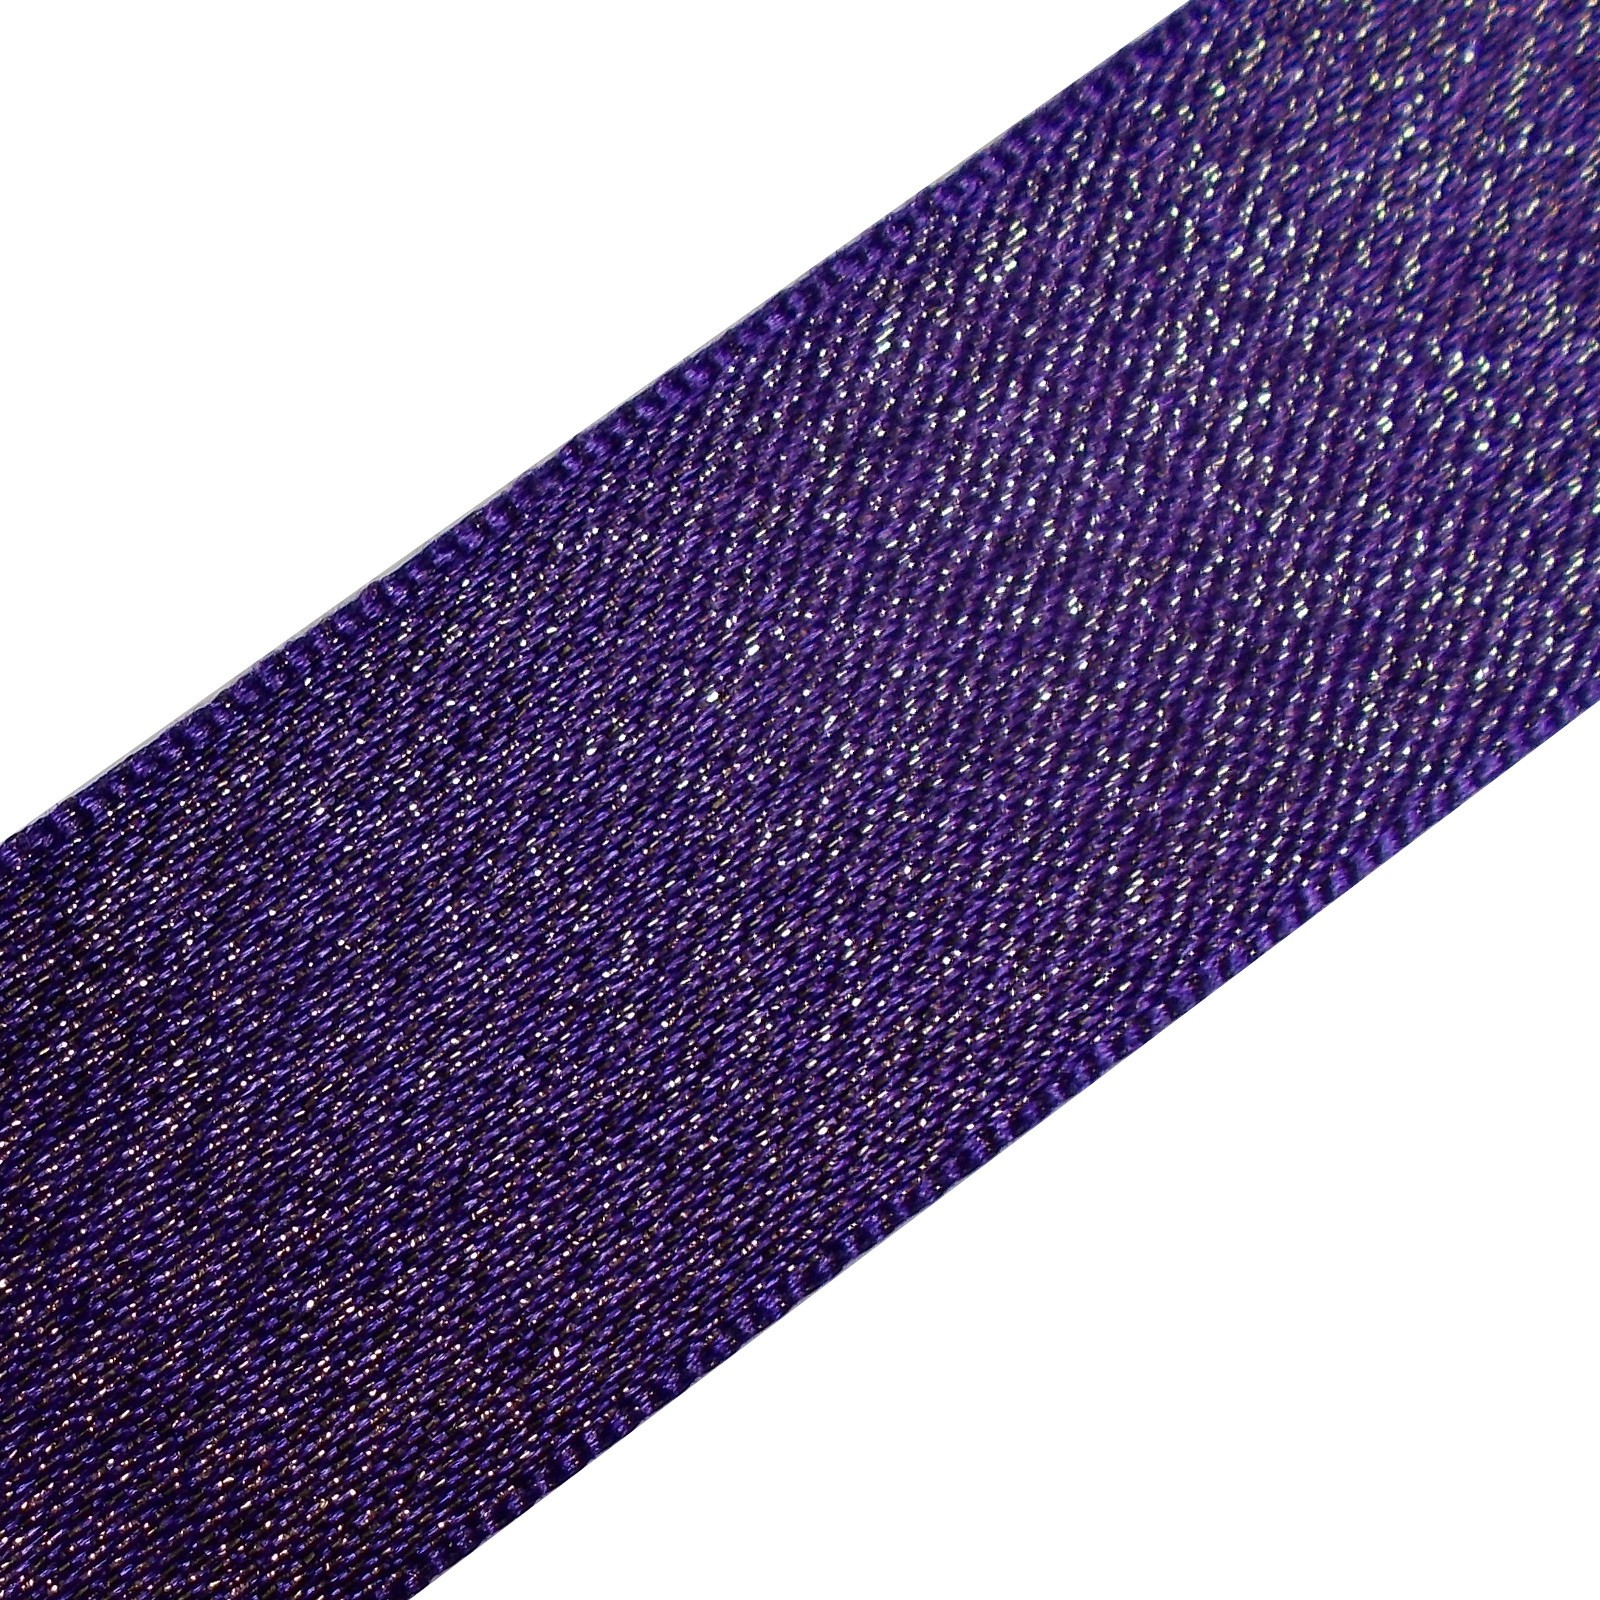 Berisfords Glitter Satin Ribbon 15mm wide Purple 1 metre length